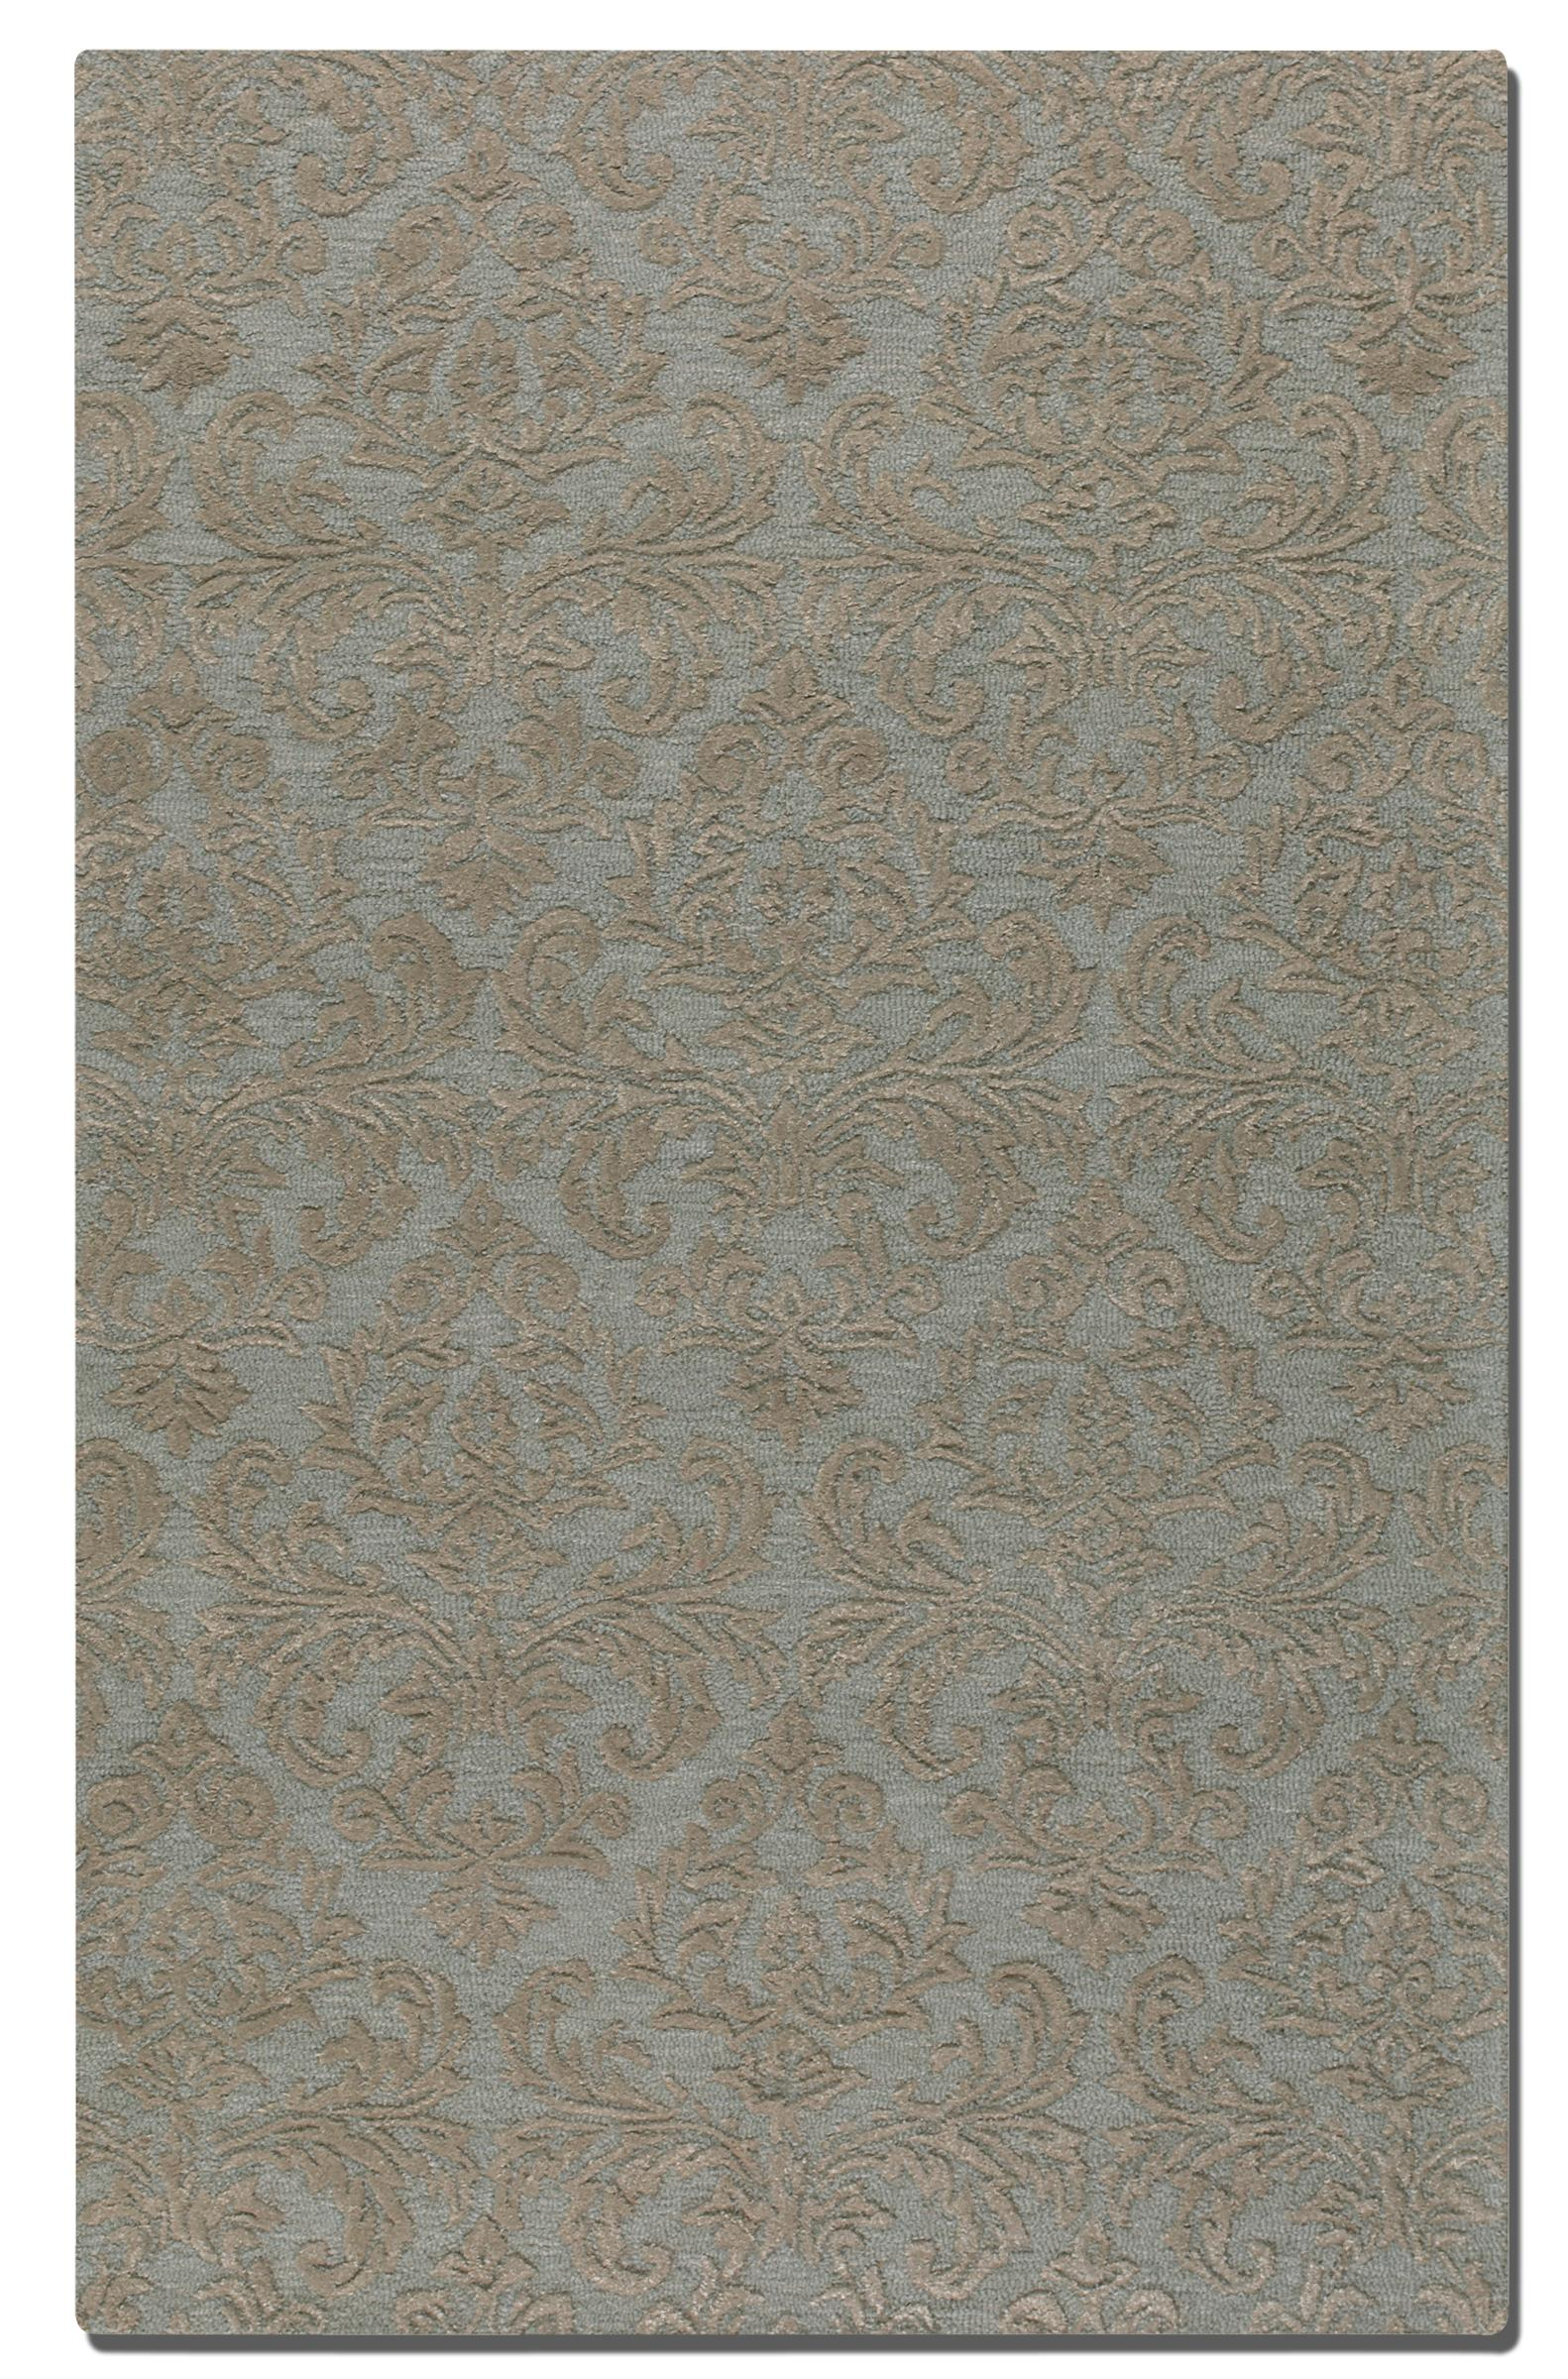 Uttermost Rugs St. Petersburg 5 X 8  - Item Number: 73032-5